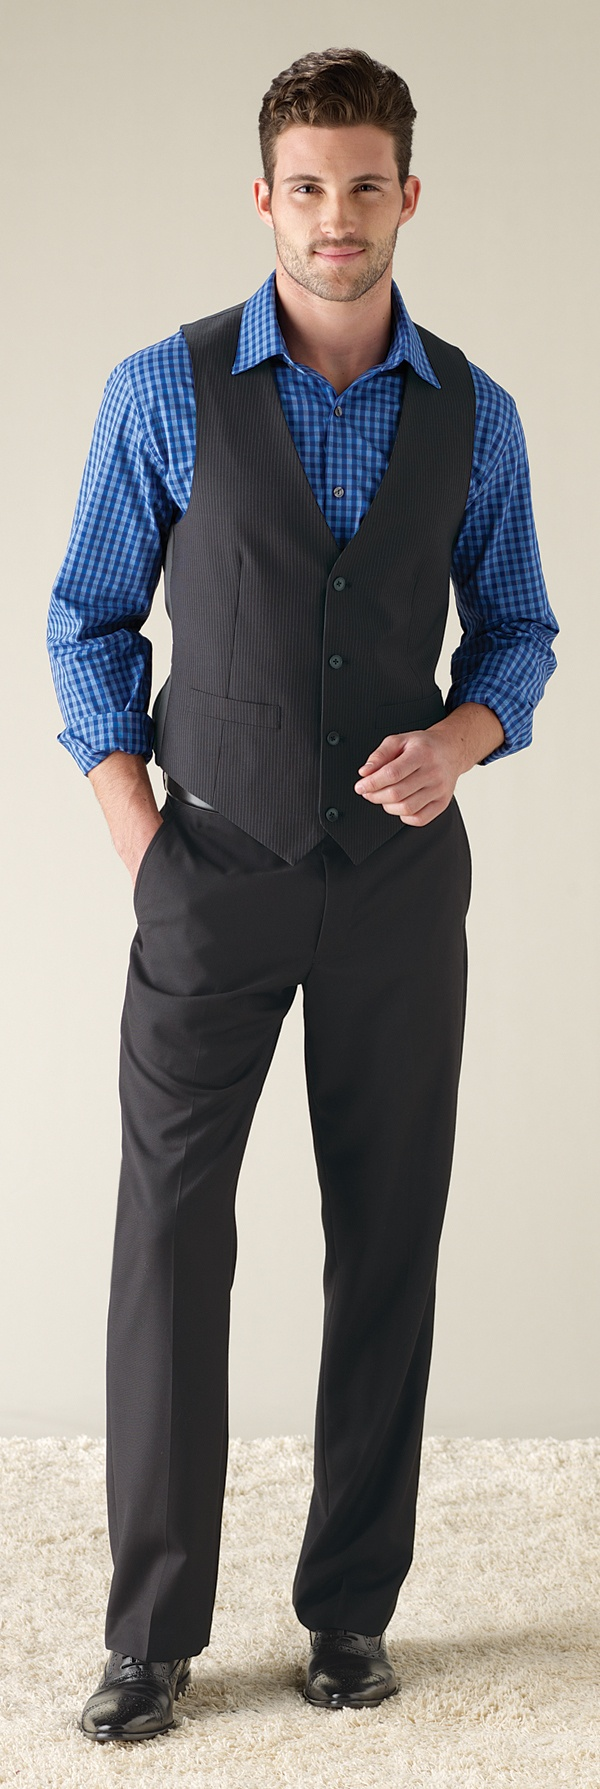 Mens suit separates with vest; I think my husband could rock a vest